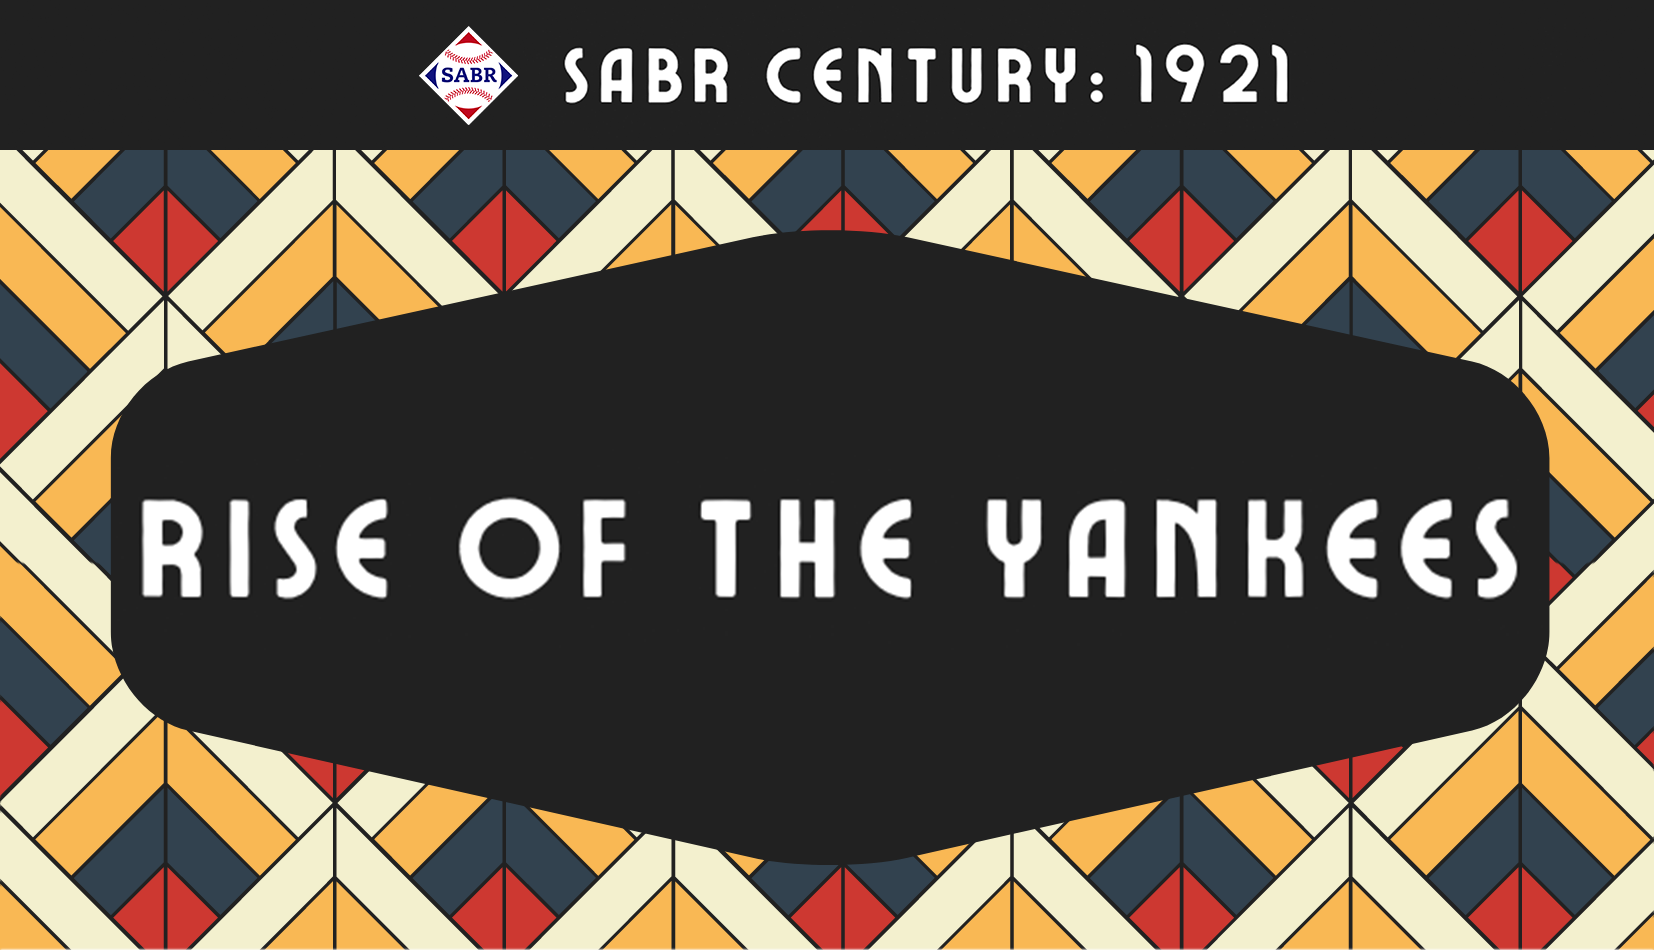 SABR Century: Rise of the Yankees